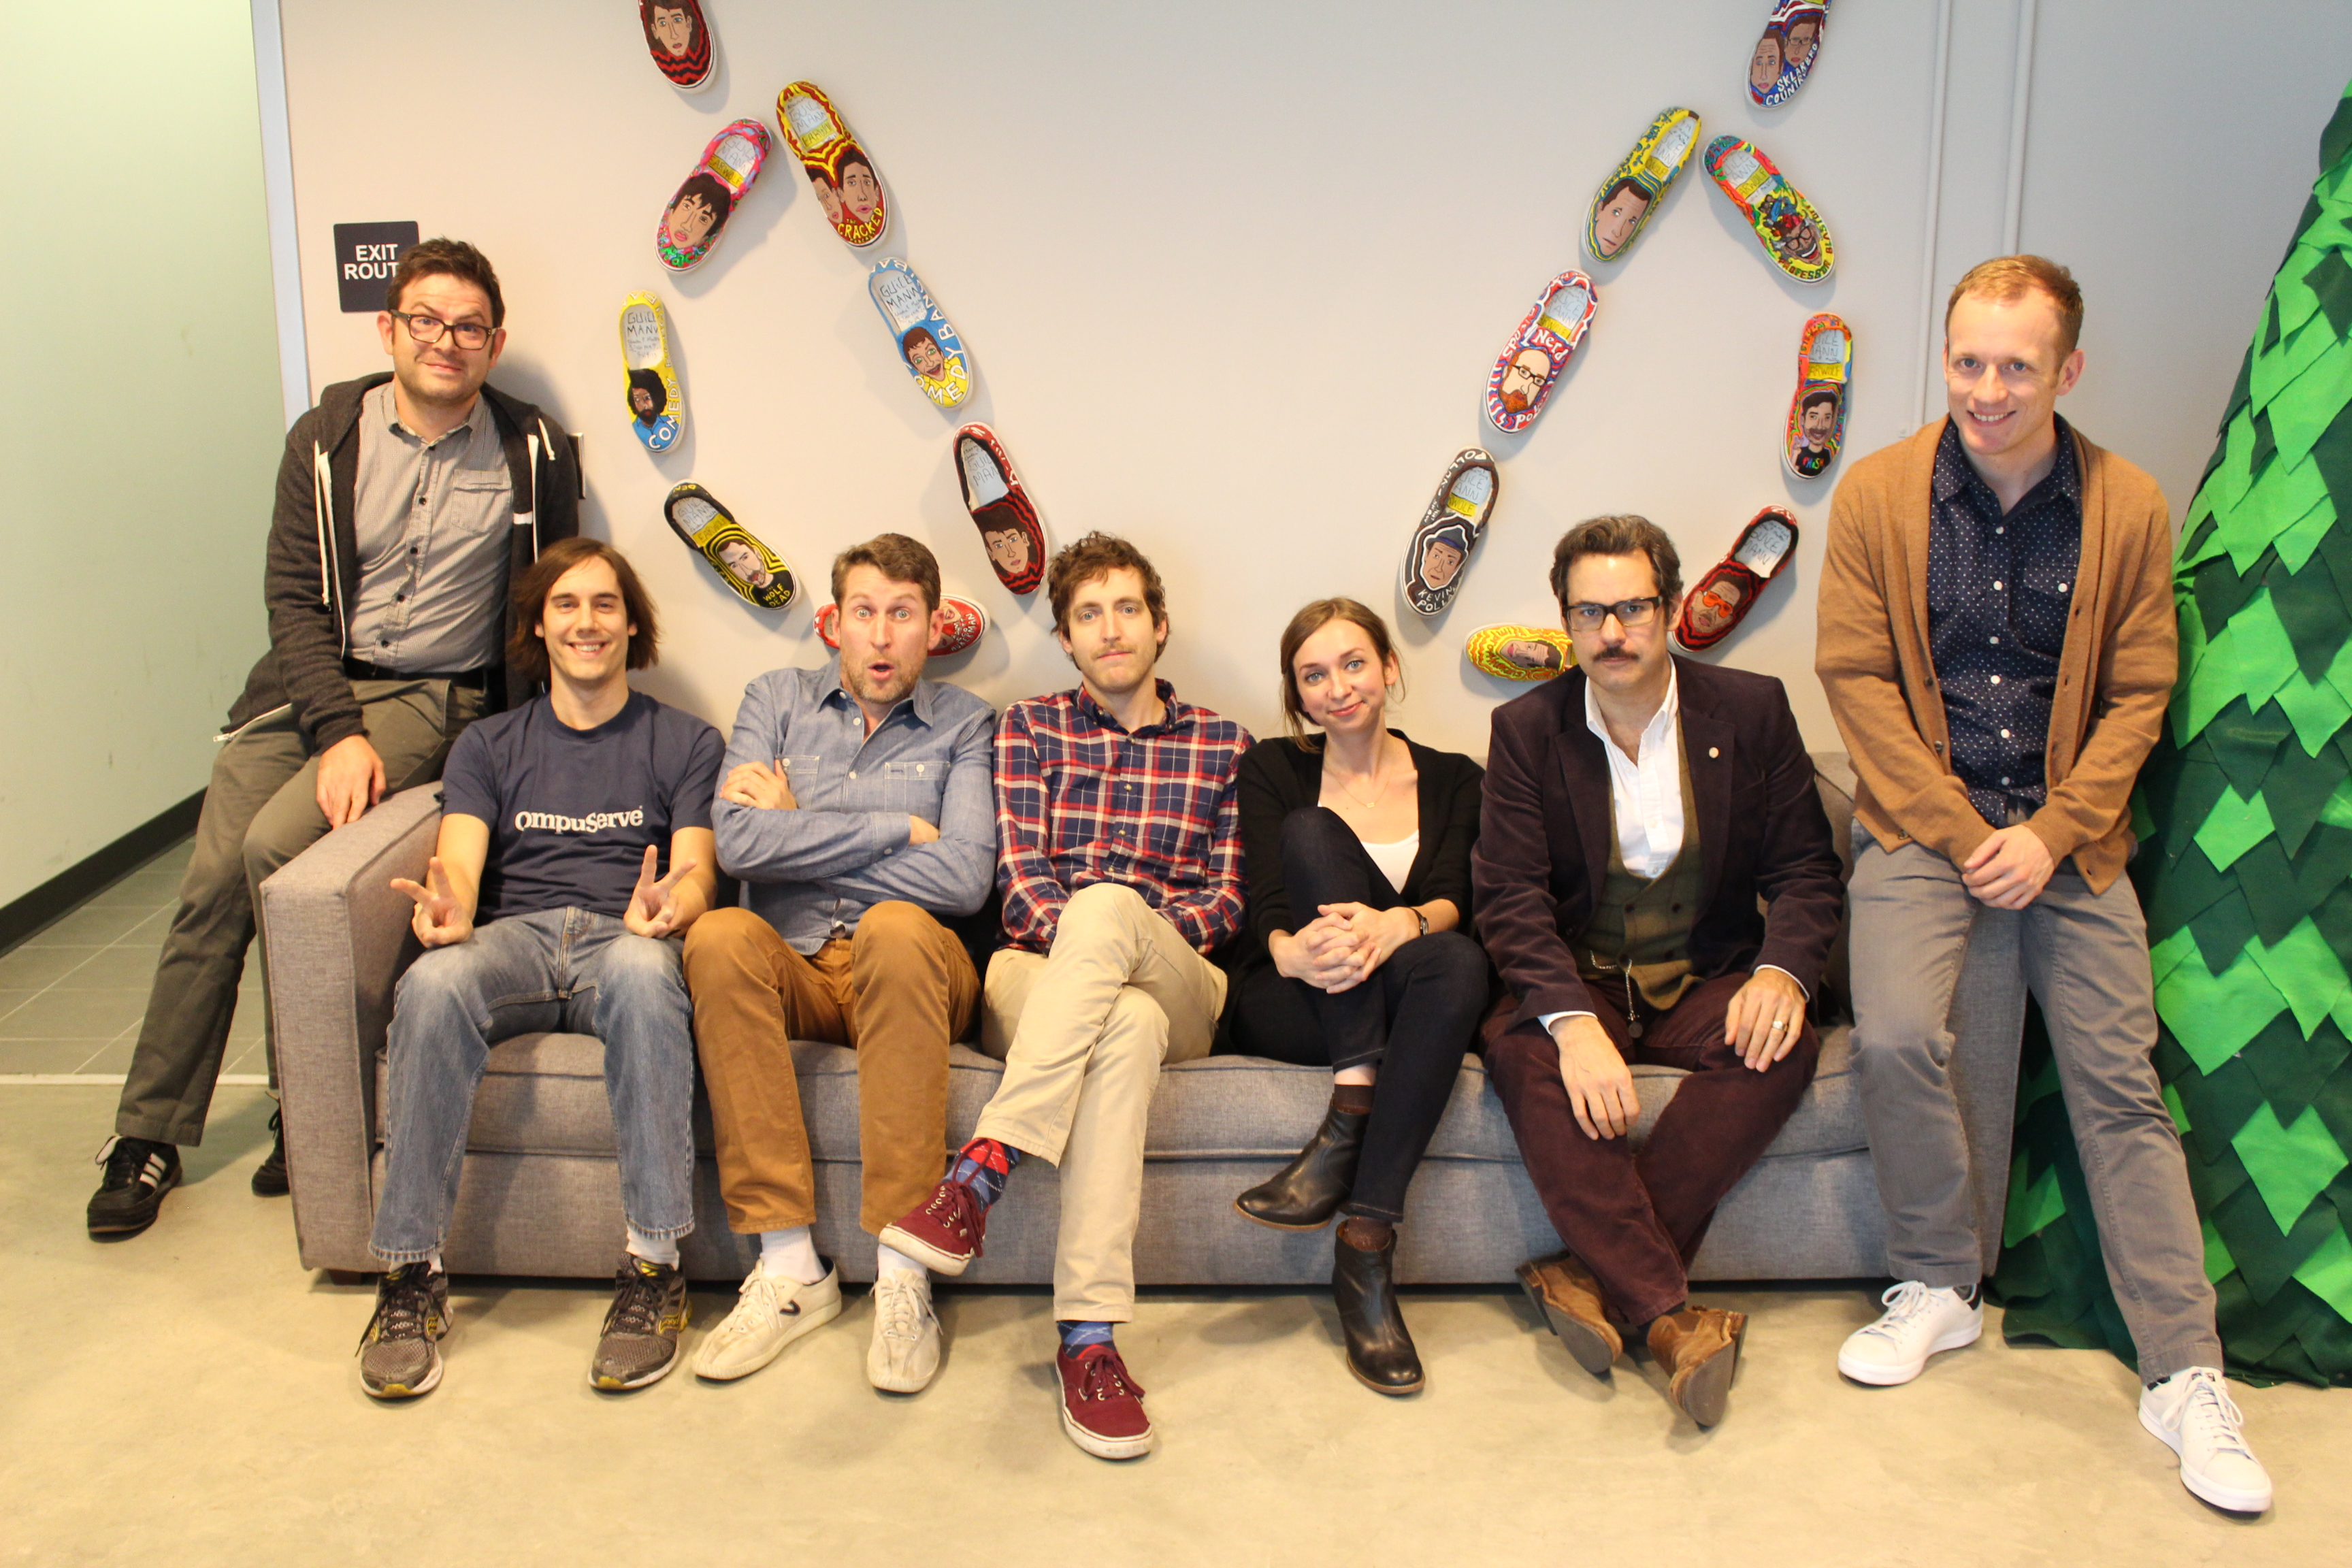 The 6th Anniversary Show Episode 349 Of Comedy Bang